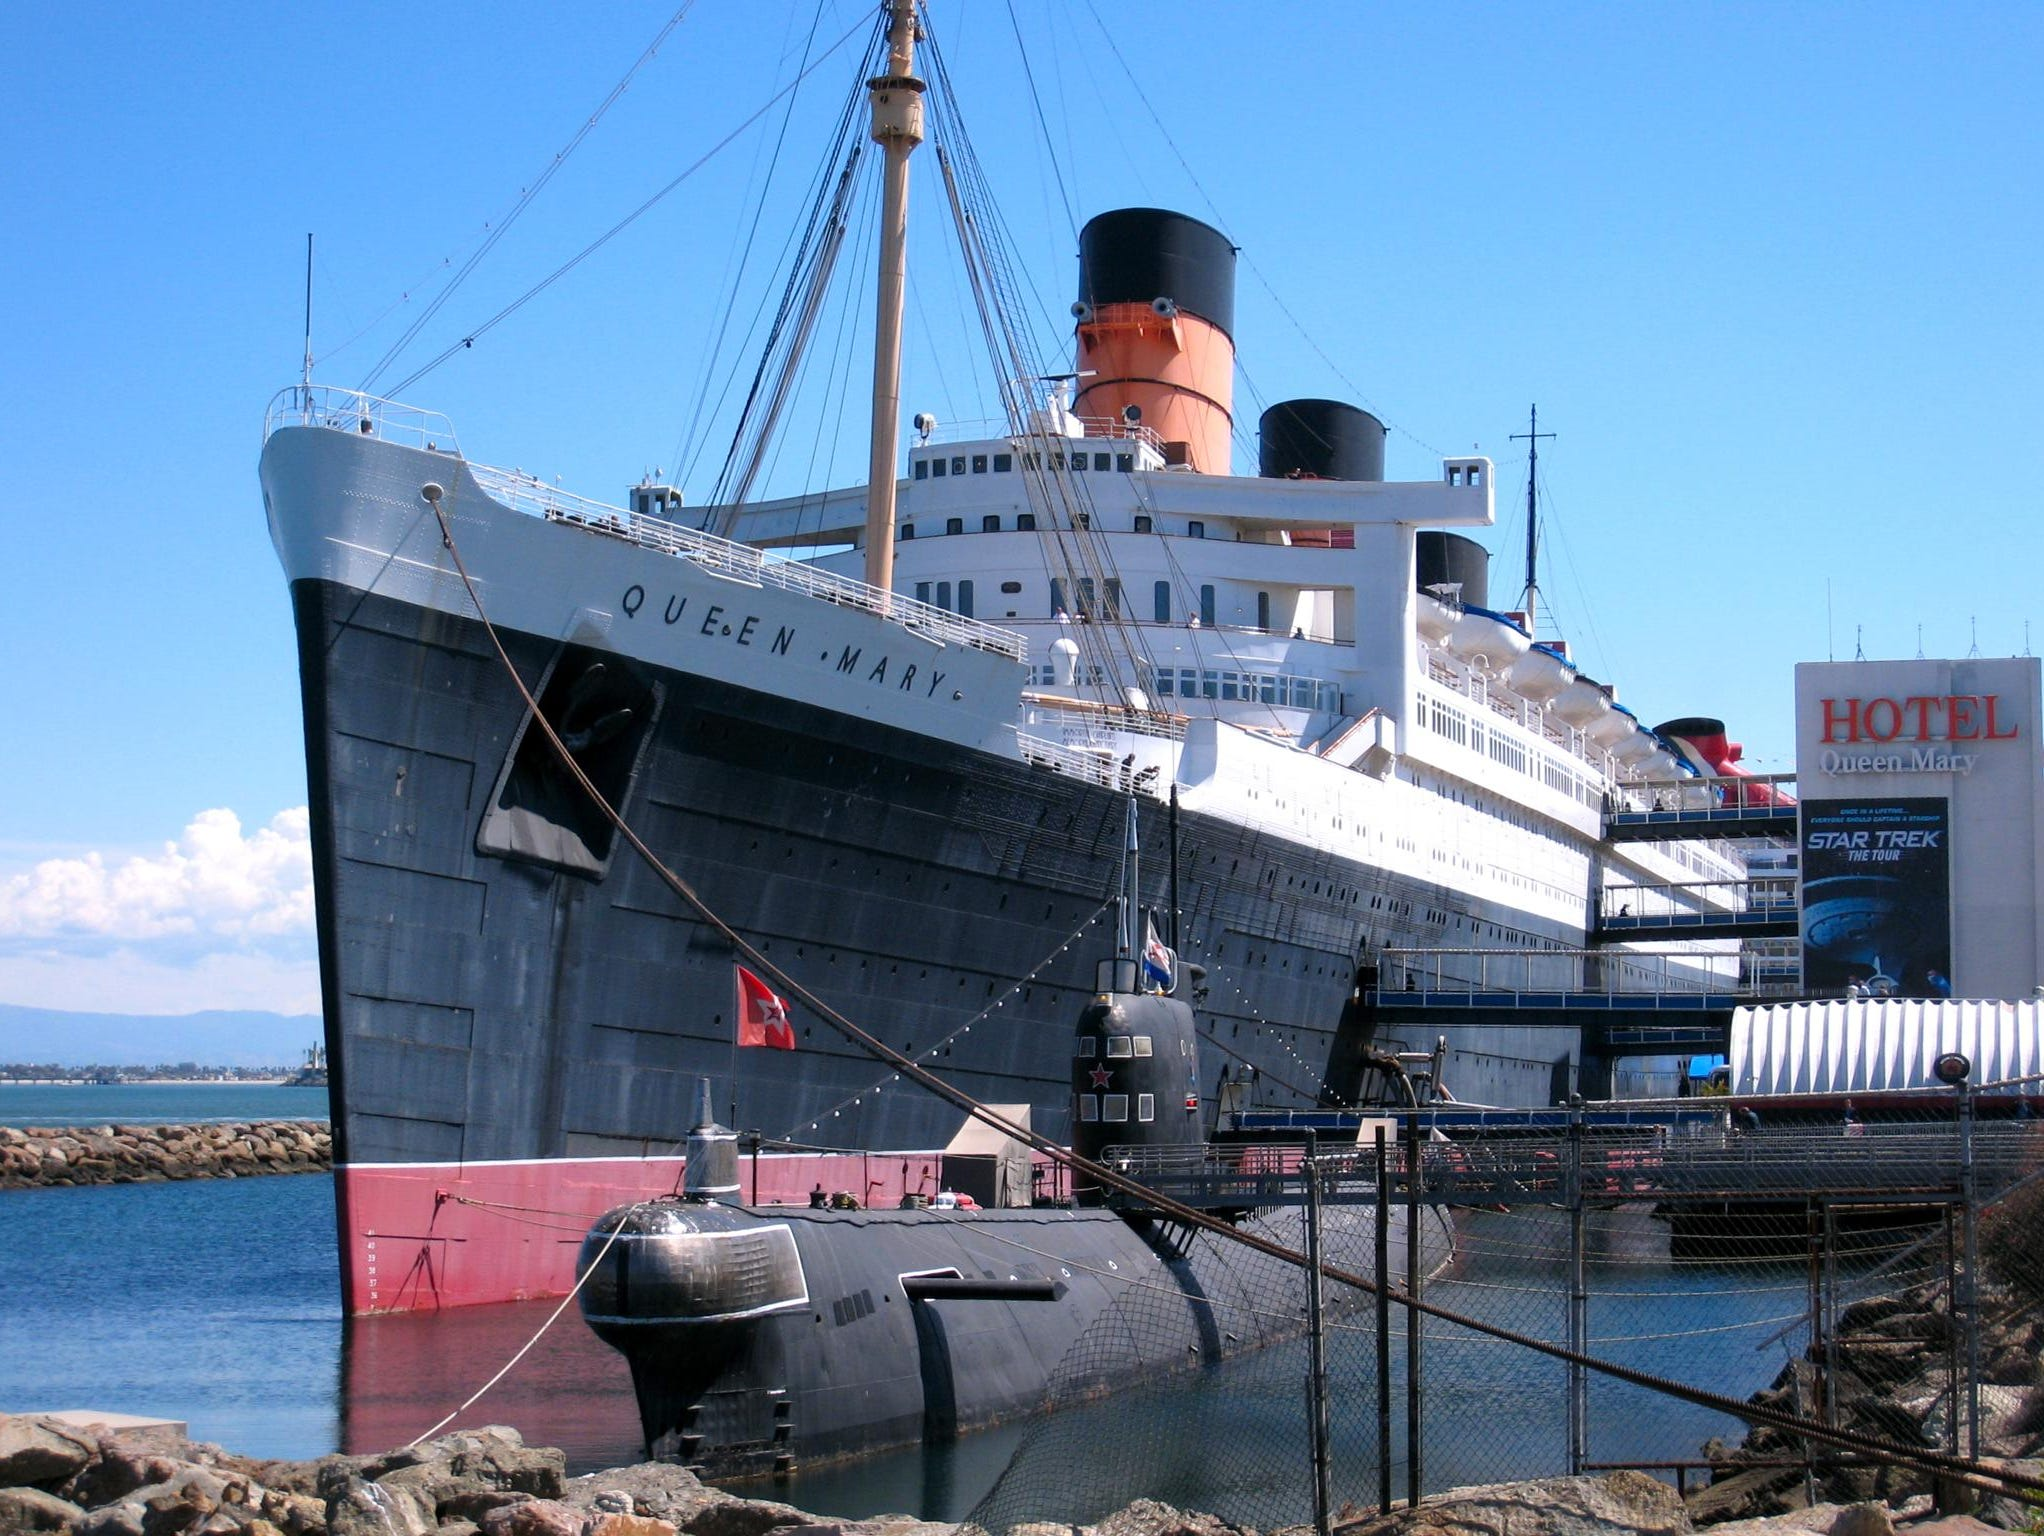 Quite possibly the most famous passenger ship of all time (that did not sink), the former Cunard liner Queen Mary continues to serve well into its 76th year. The iconic three funneled liner is now a cherished hotel, museum and tourist attraction in Long Beach, California.